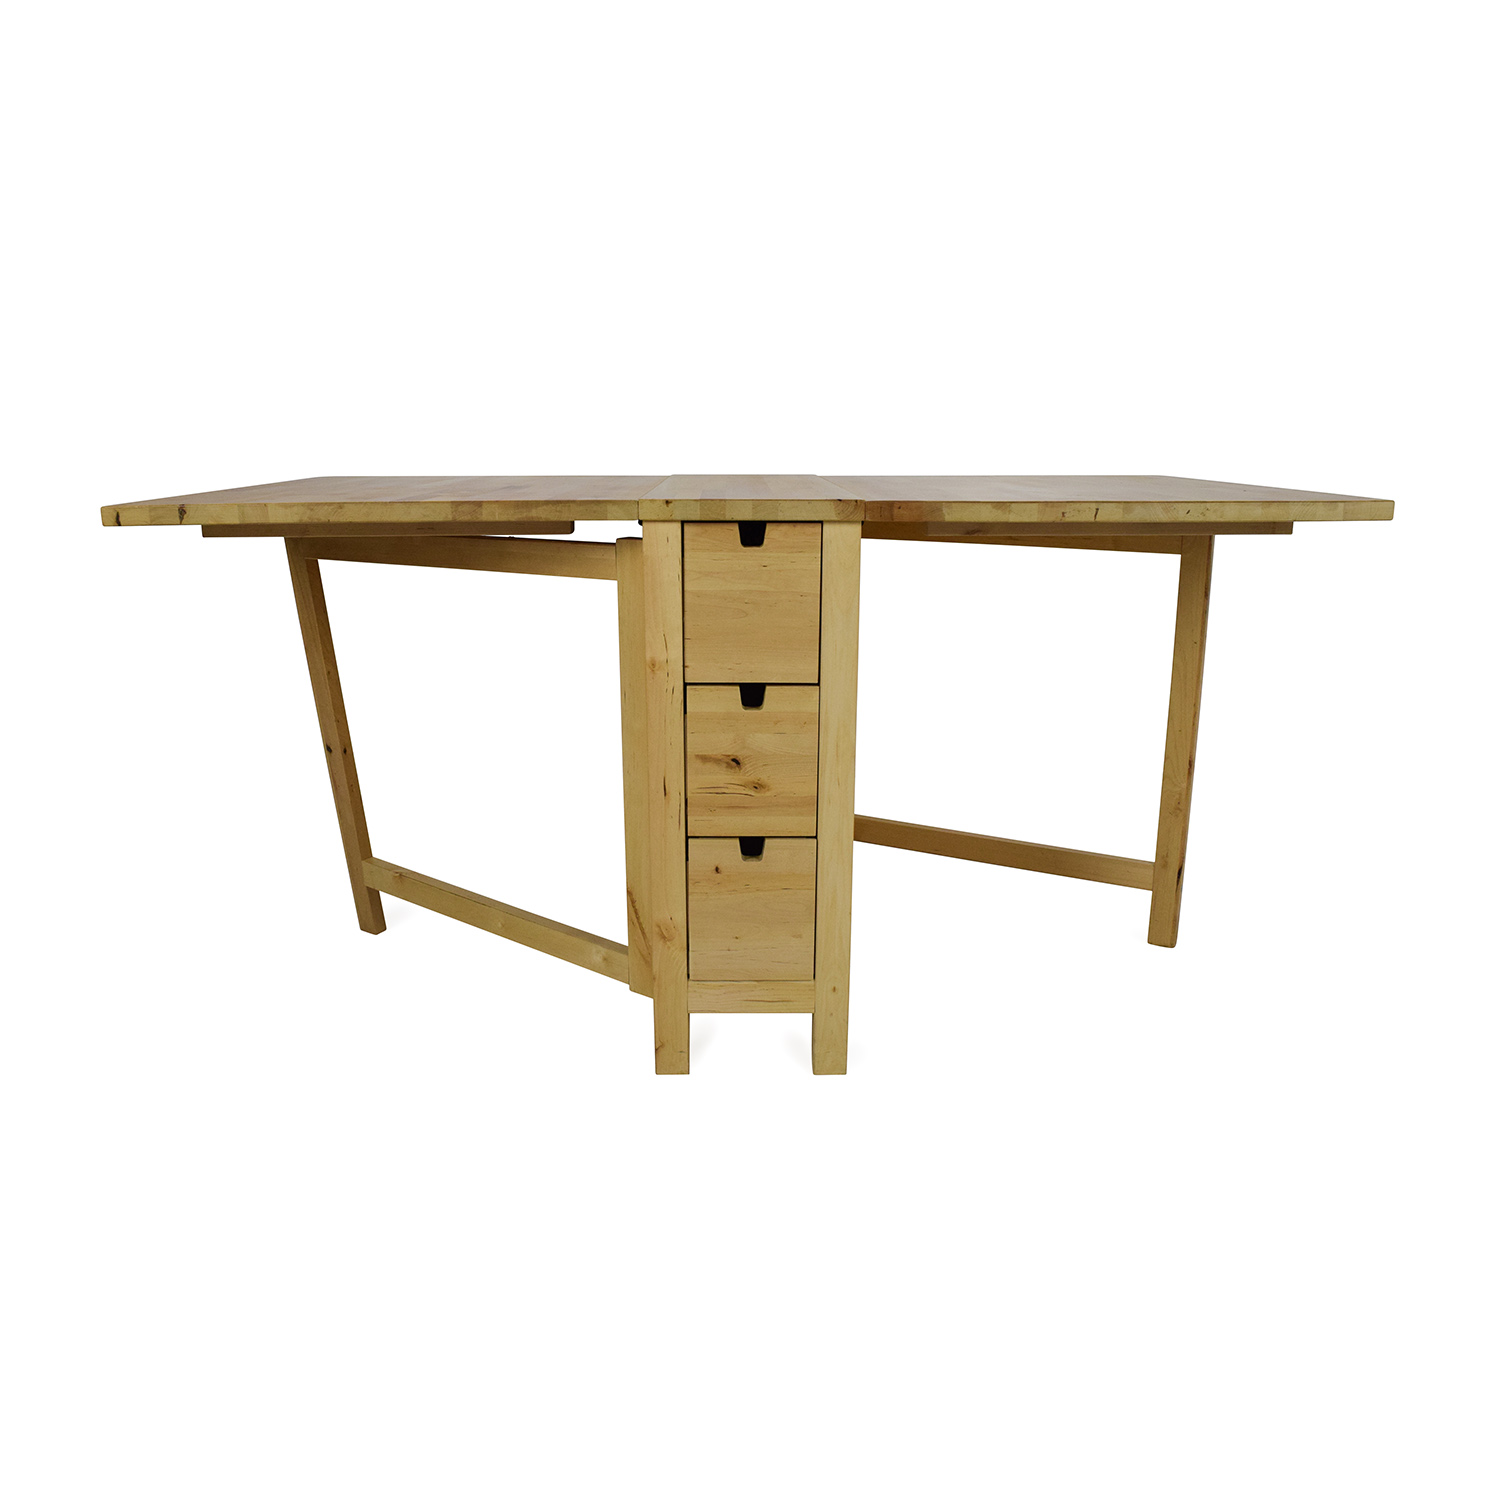 Folding Wooden Table Ikea 72 Off Ikea Ikea Foldable Kitchen Table And Desk Tables